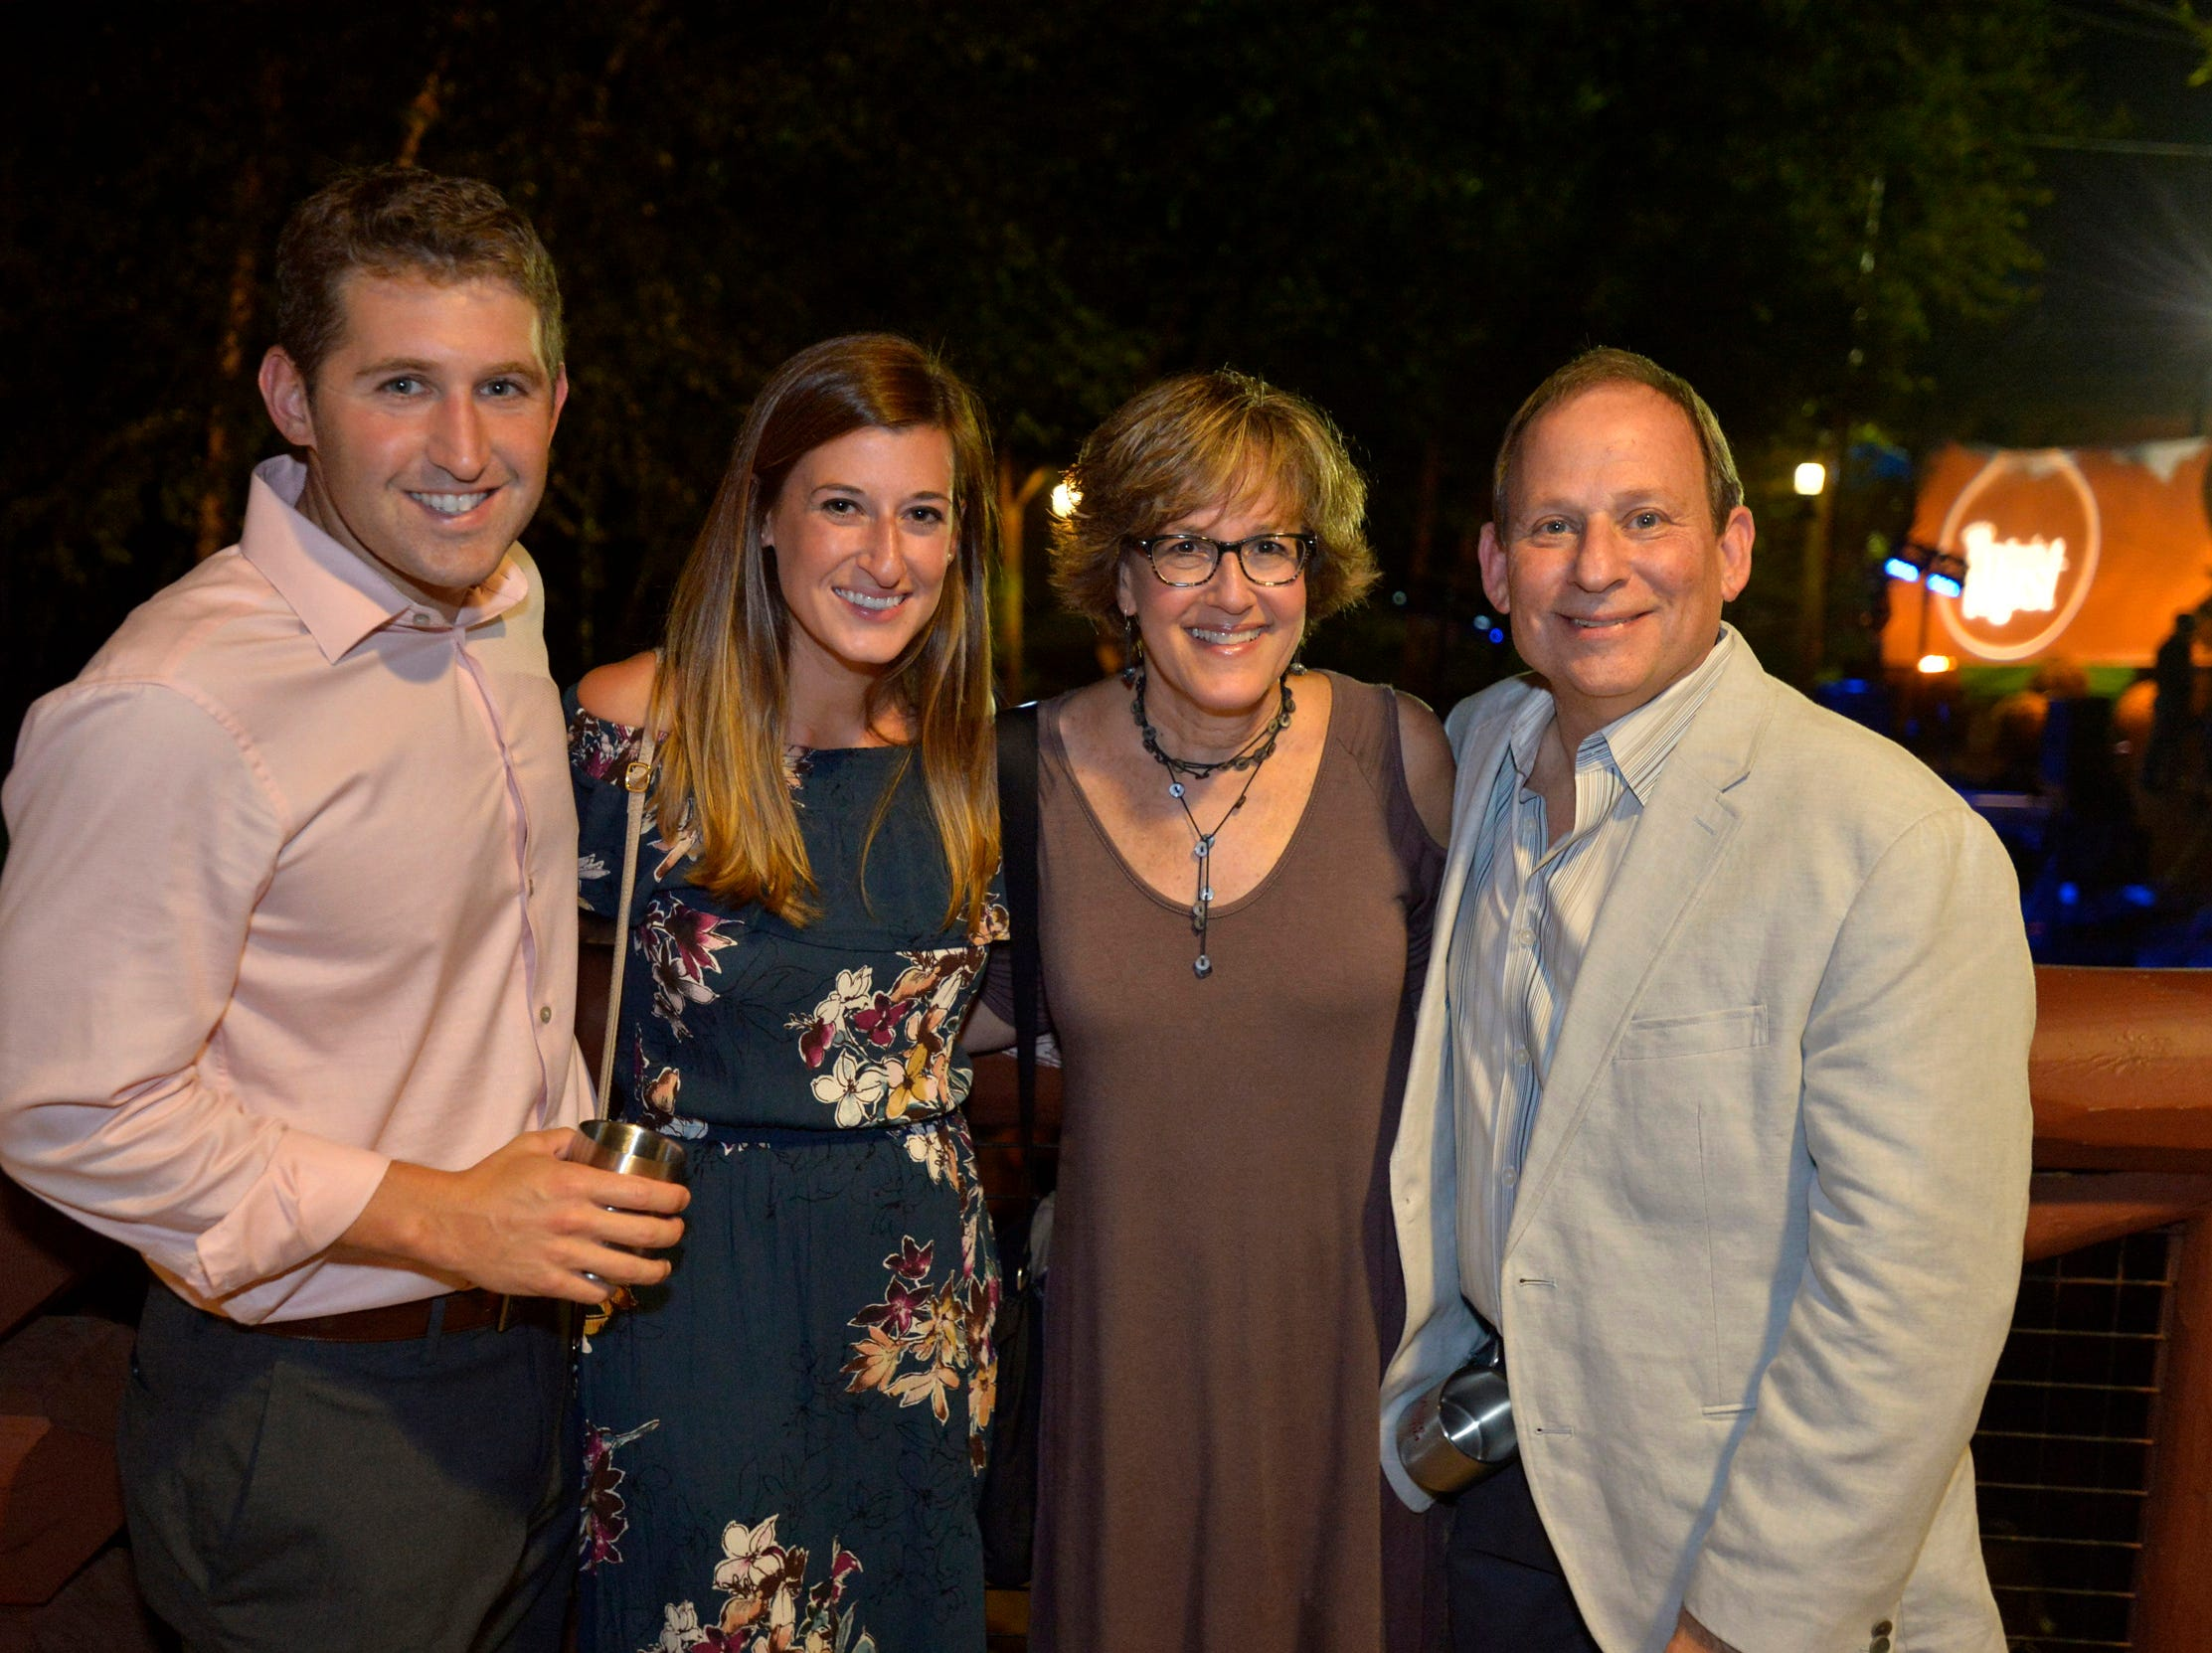 September 13, 2018 - Kevin Padawer, from left, Samantha Padawer, Rhonda Ginsburg and Alex Ginsburg pose for a photo during the 2018 Memphis Most awards party at Teton Trek in the Memphis Zoo. (Brandon Dill for The Commercial Appeal)